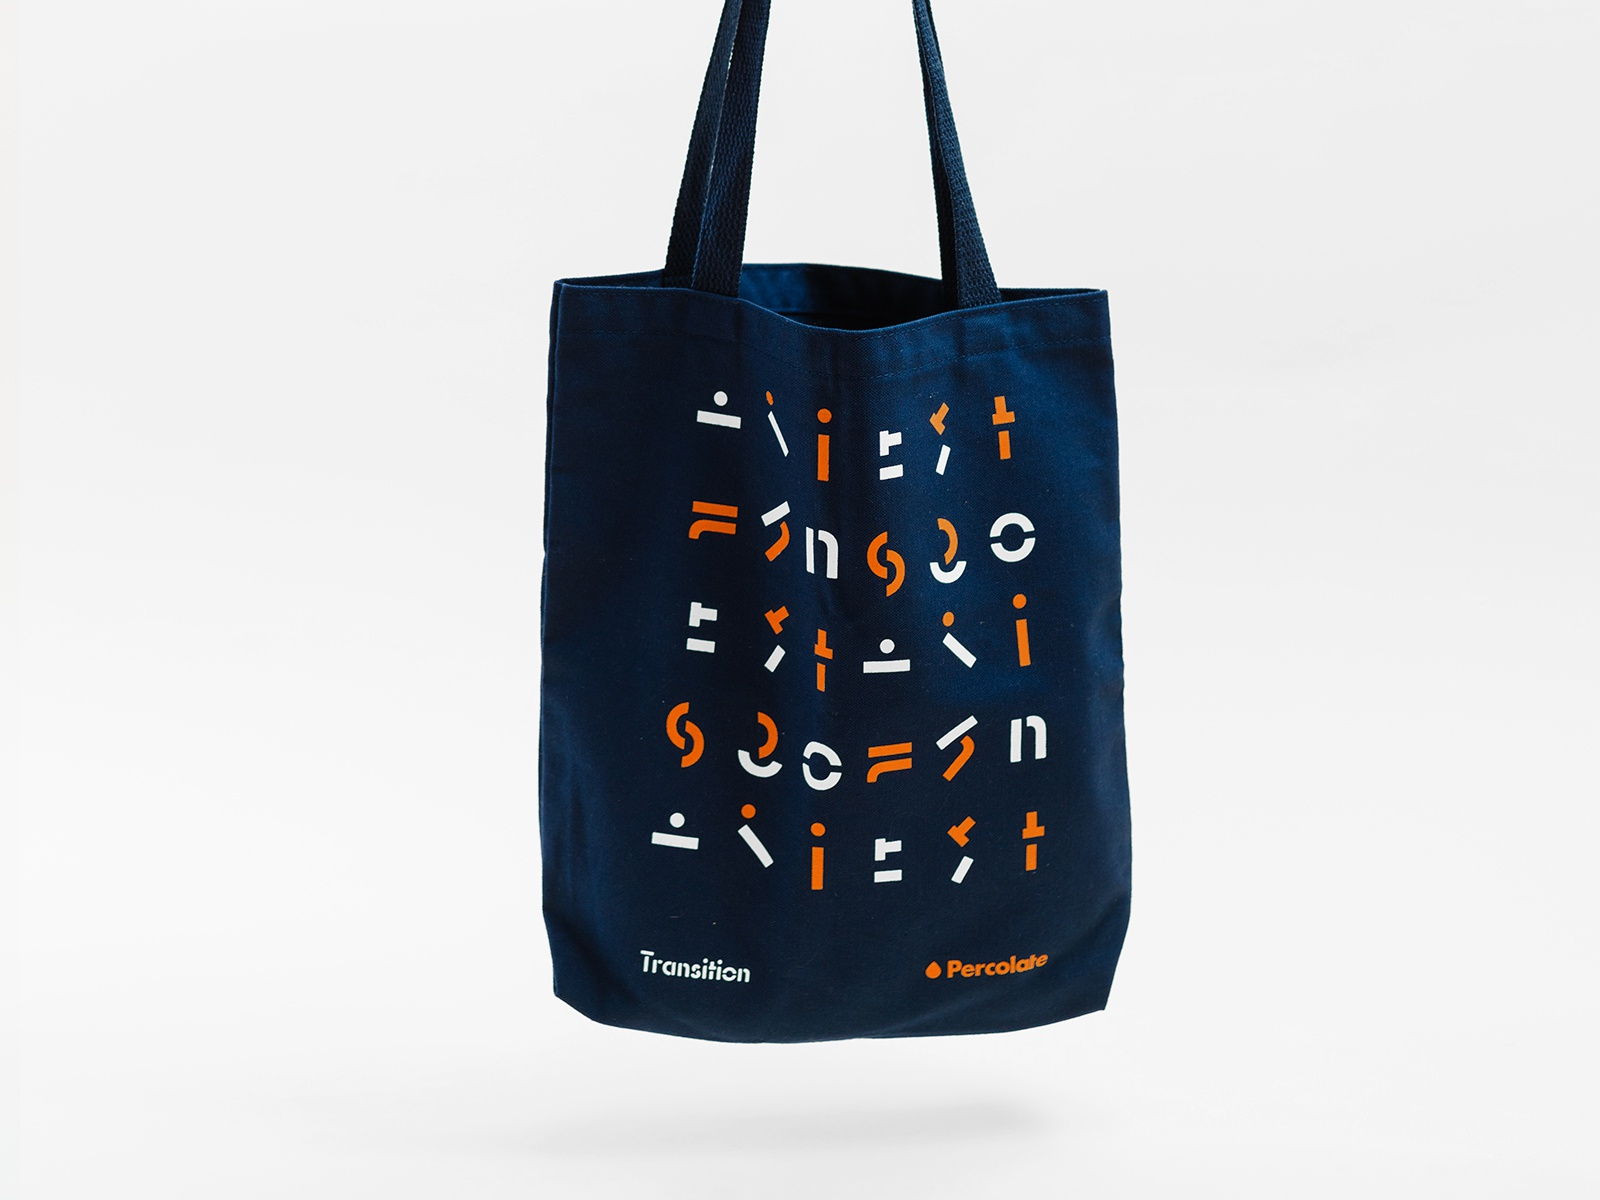 Transition tote dribbble